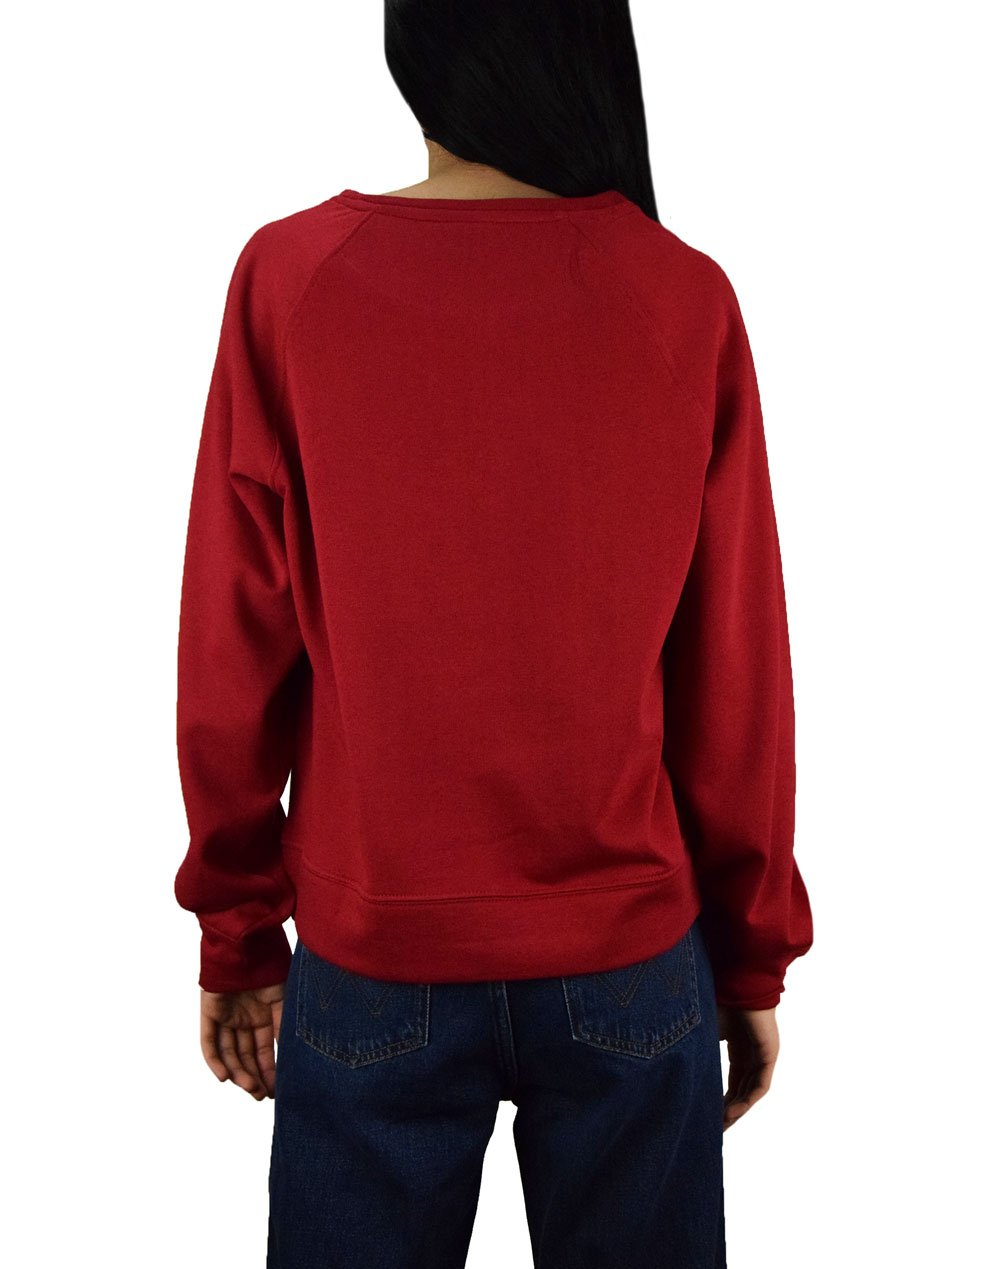 Only Rolling Stones Long Sleeve Box Sweater (15195951) Rio Red